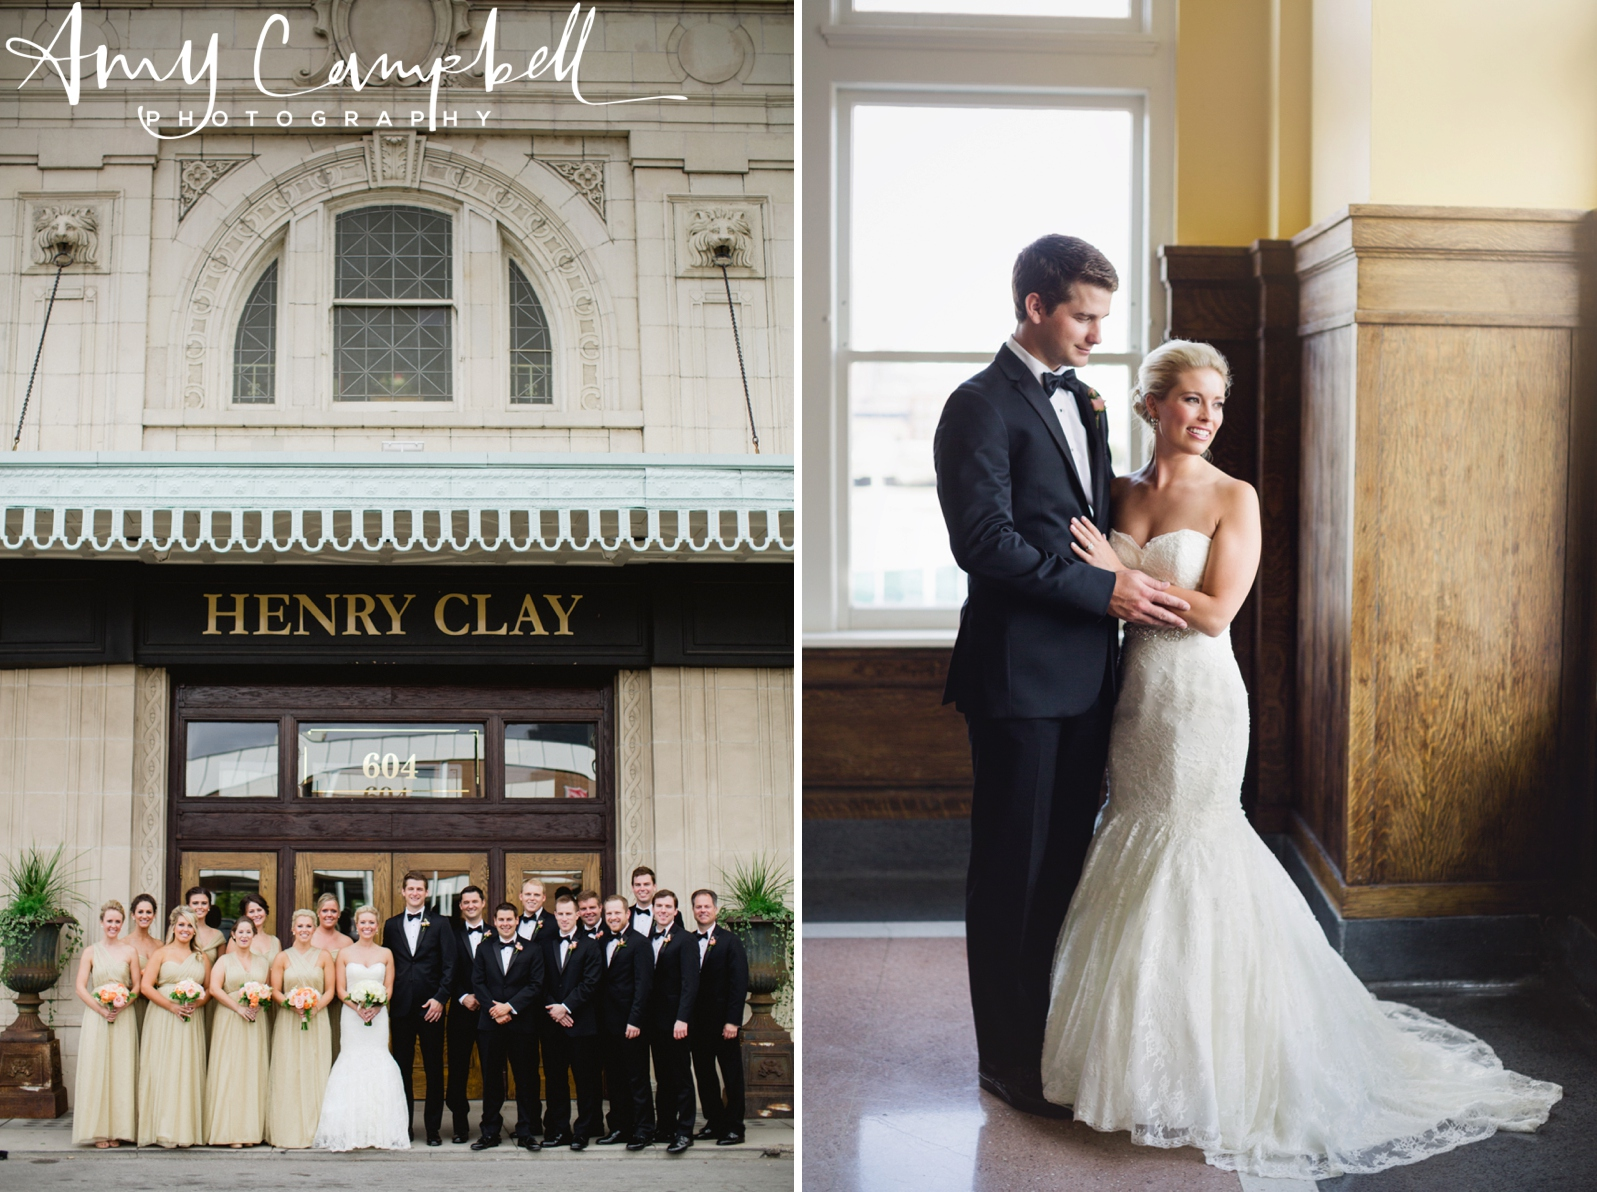 chelseamike_wedss_pics_amycampbellphotography_040.jpg